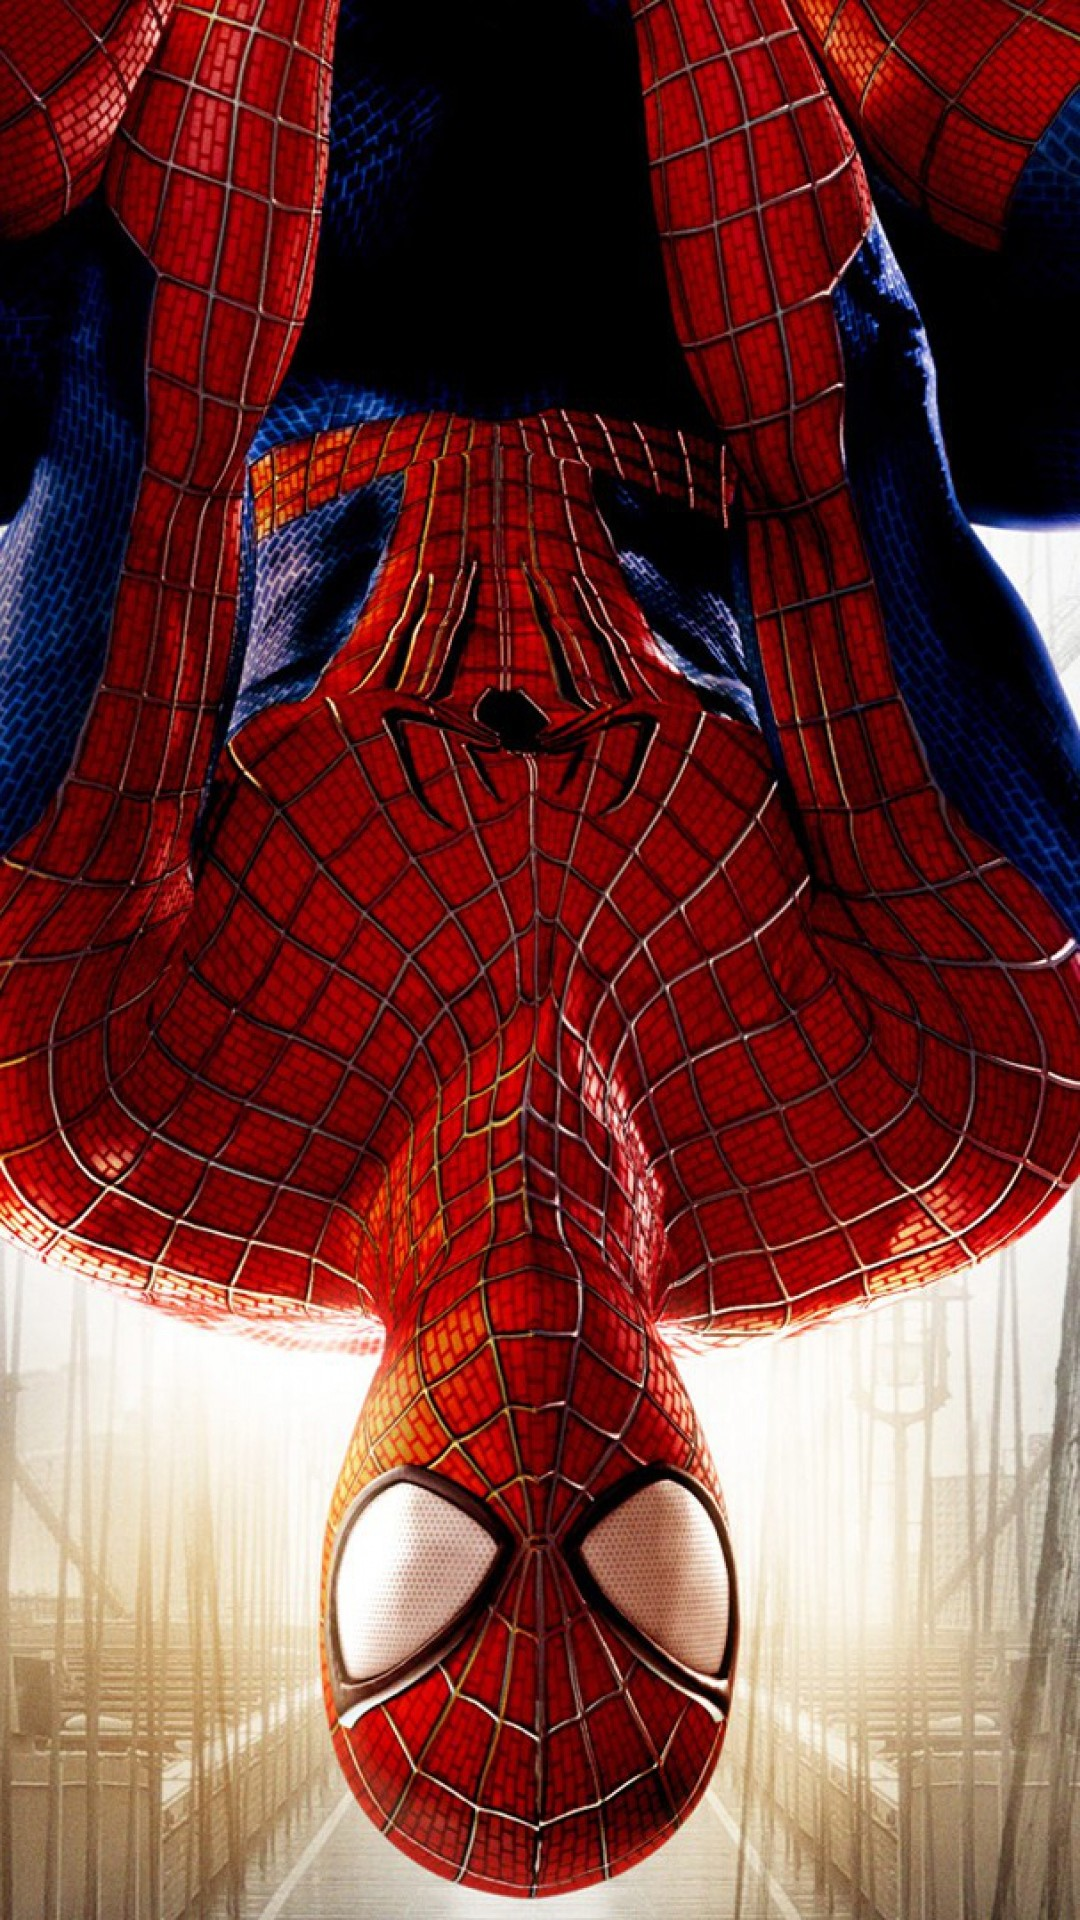 Spiderman 4 wallpaper 65 images - Iphone 6 spiderman wallpaper ...